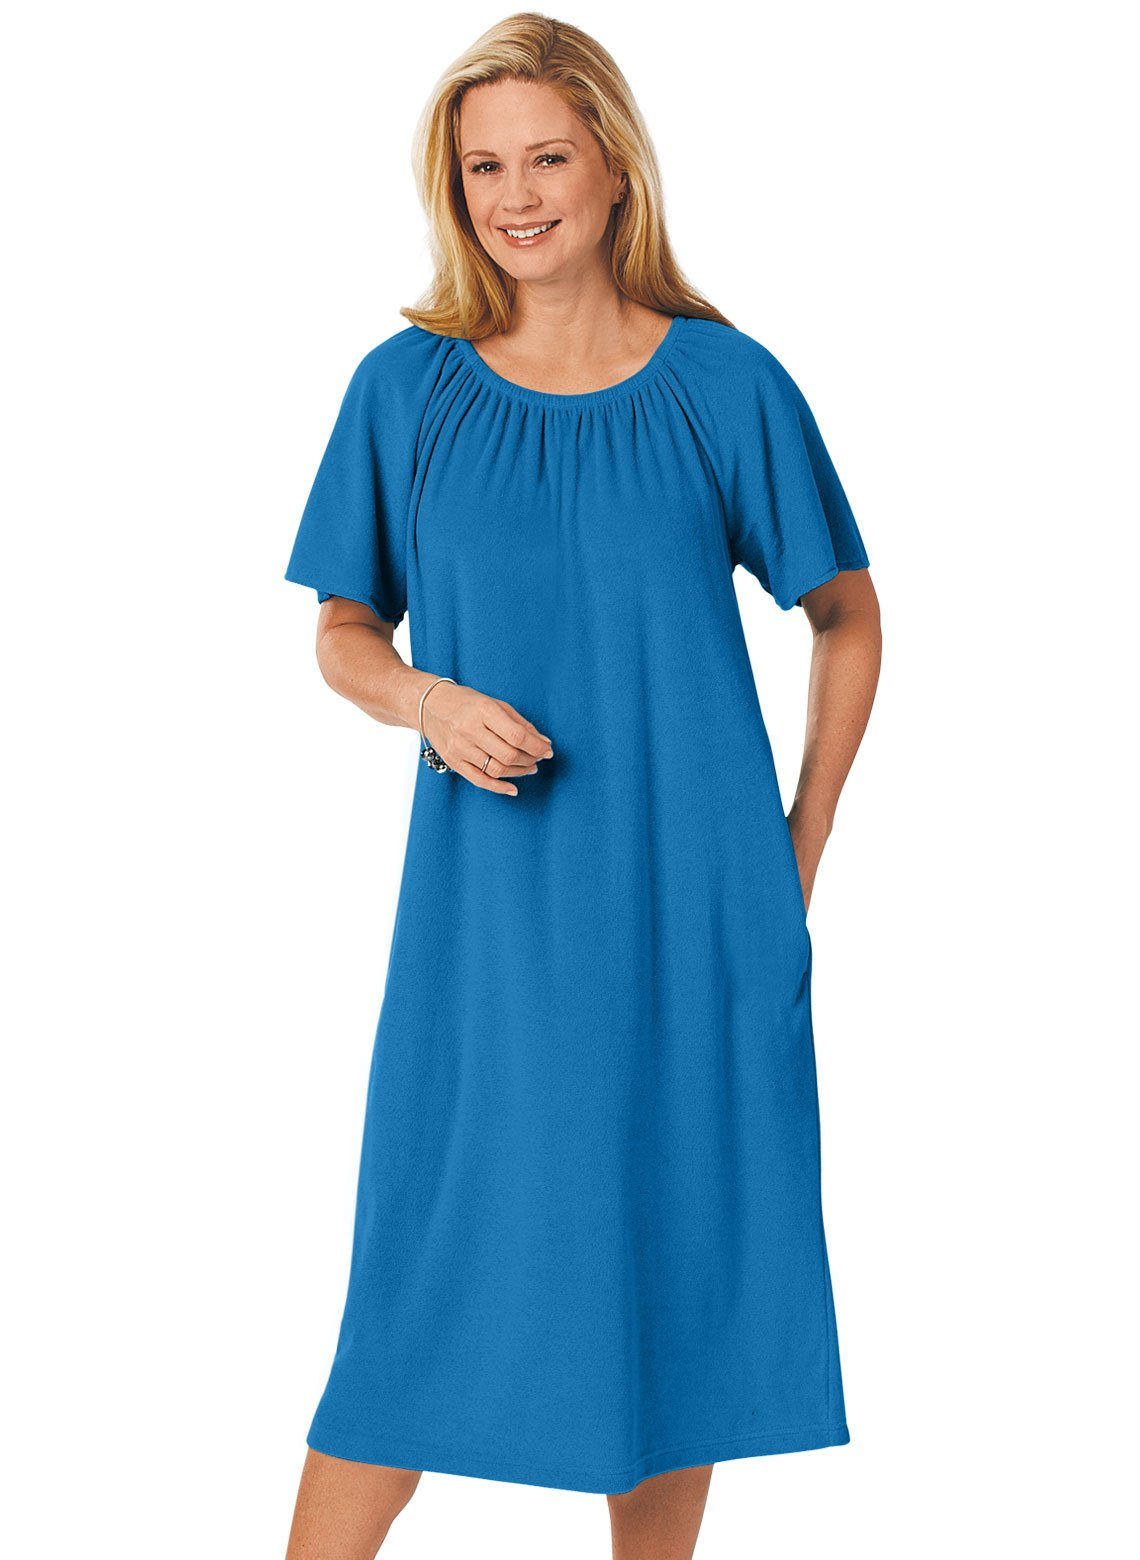 Carol Wright Gifts Terry Pop-Over Dress, Royal, Size Extra Large (1X)